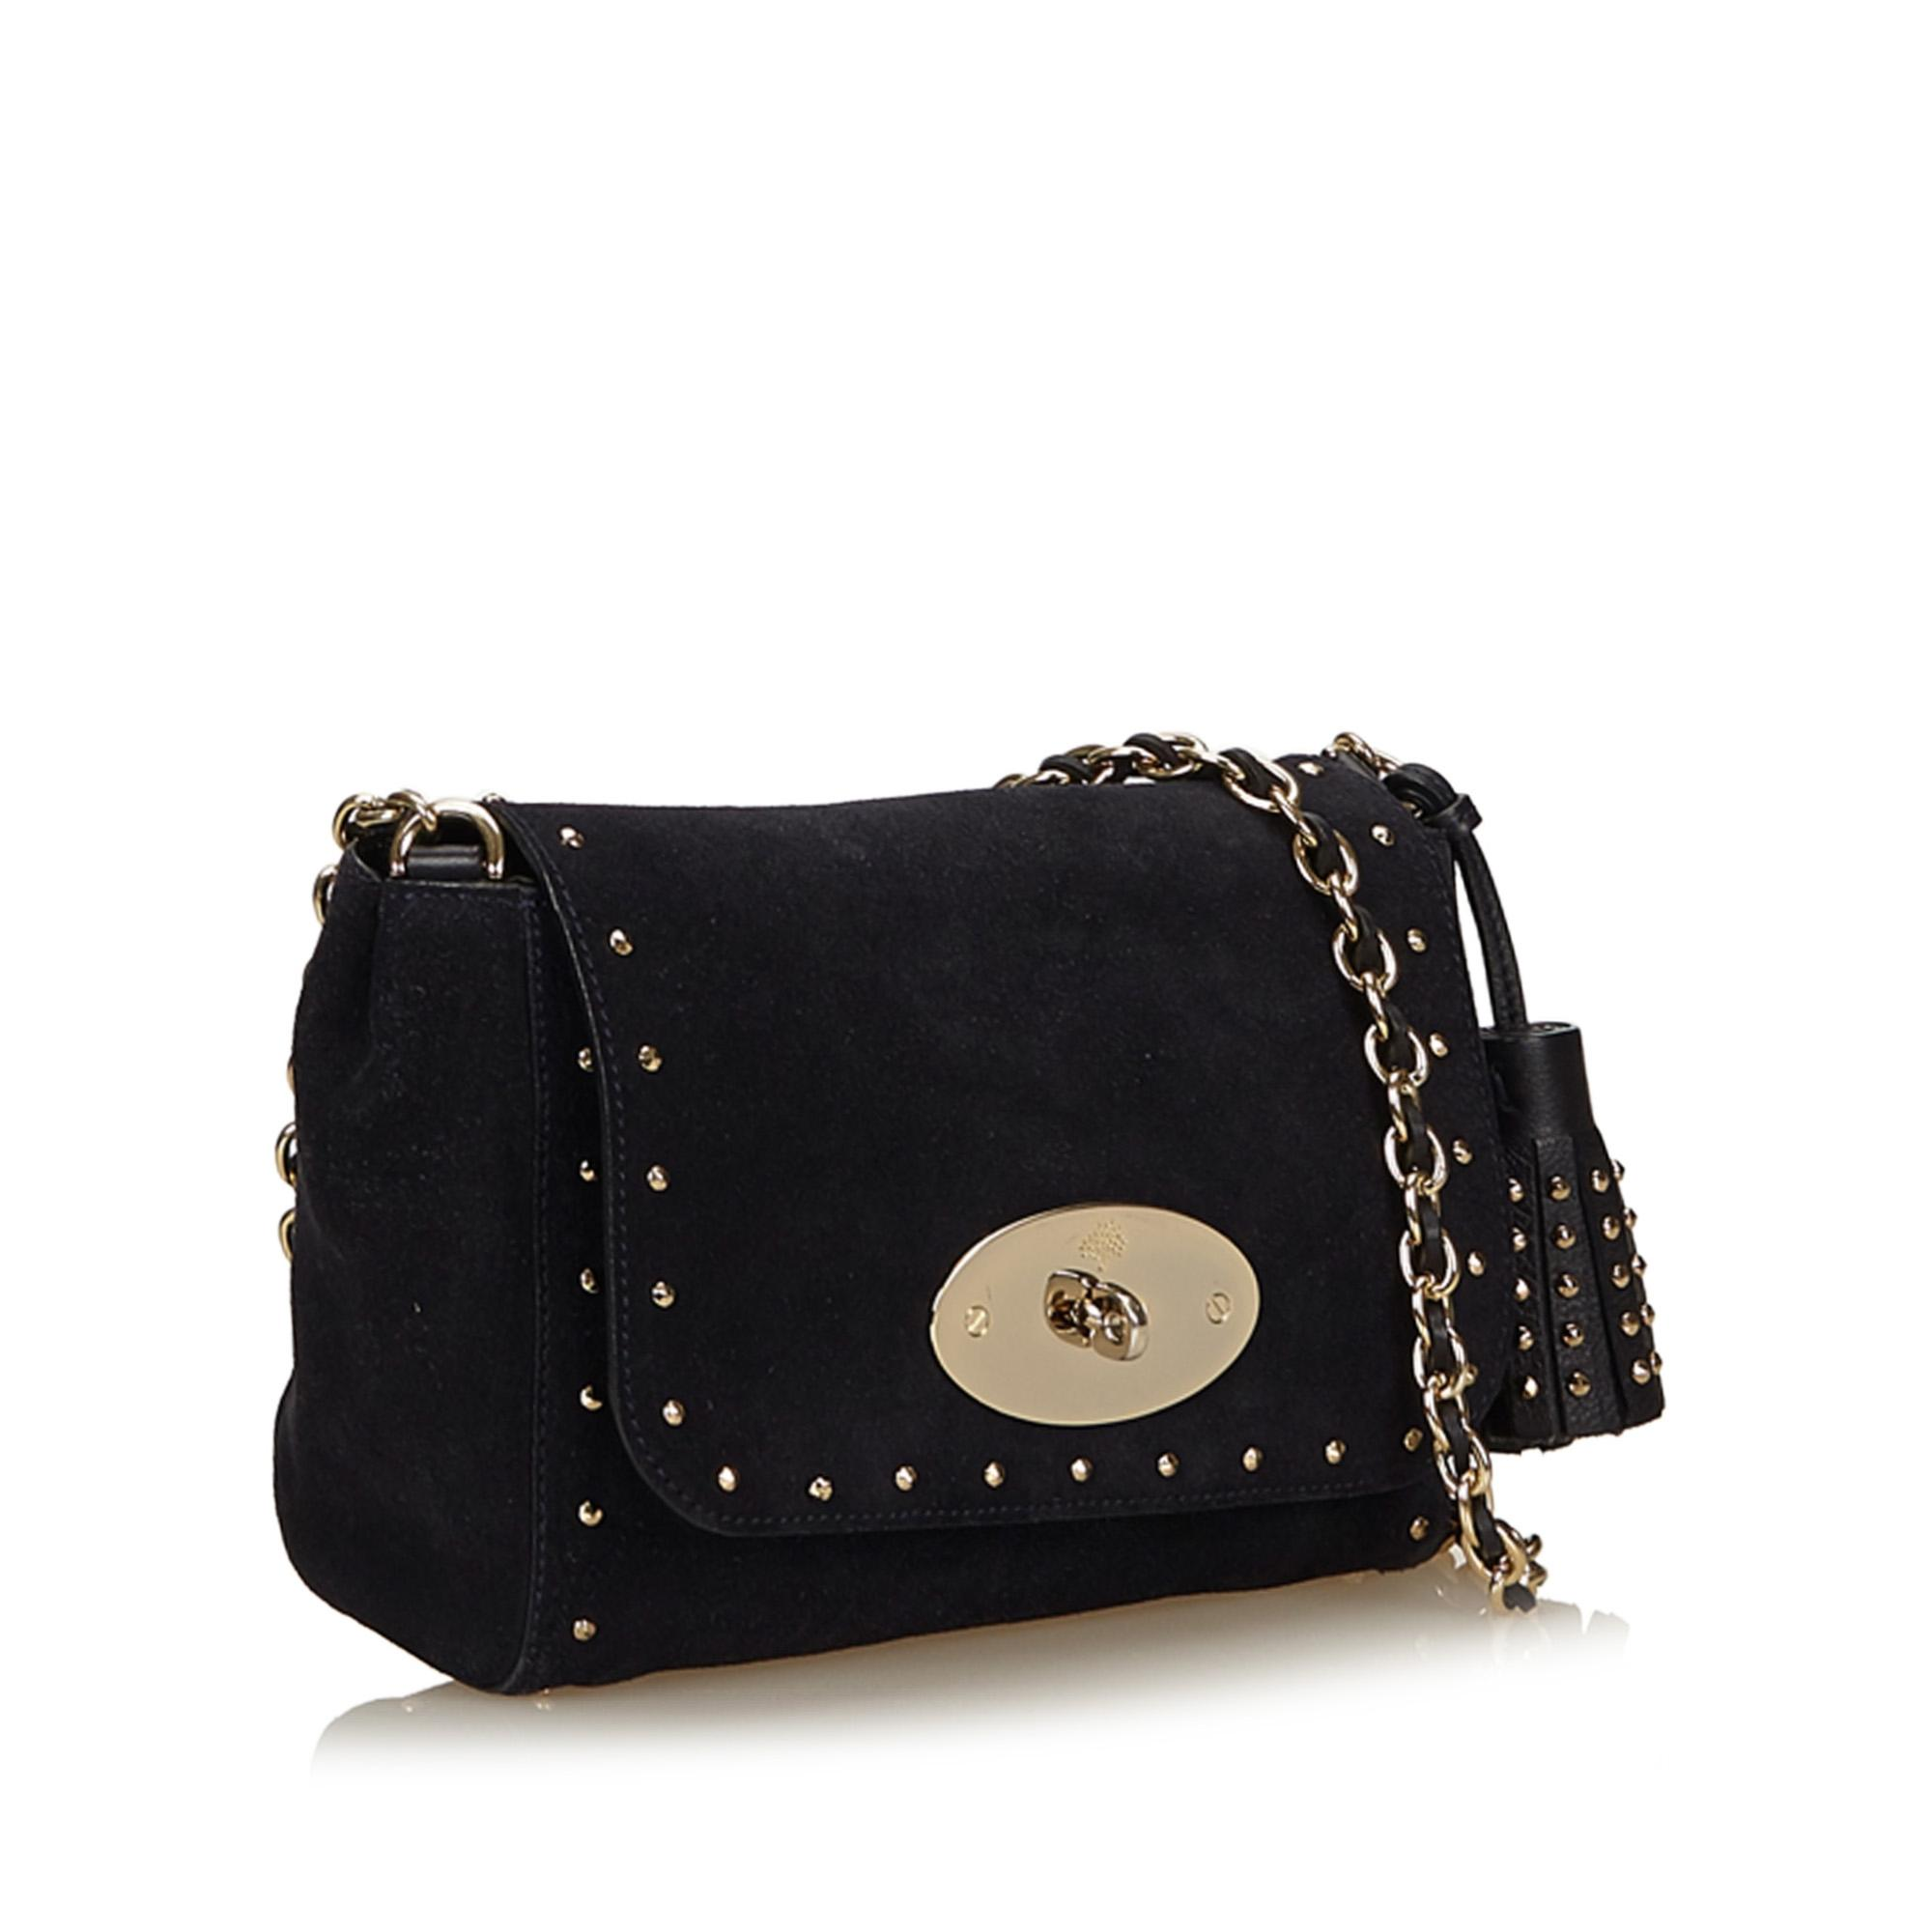 1234567 f52fd c349b  get mulberry studded lily black leather x suede x  metal x others shoulder bag tradesy d9343 6a42bb0a6147a